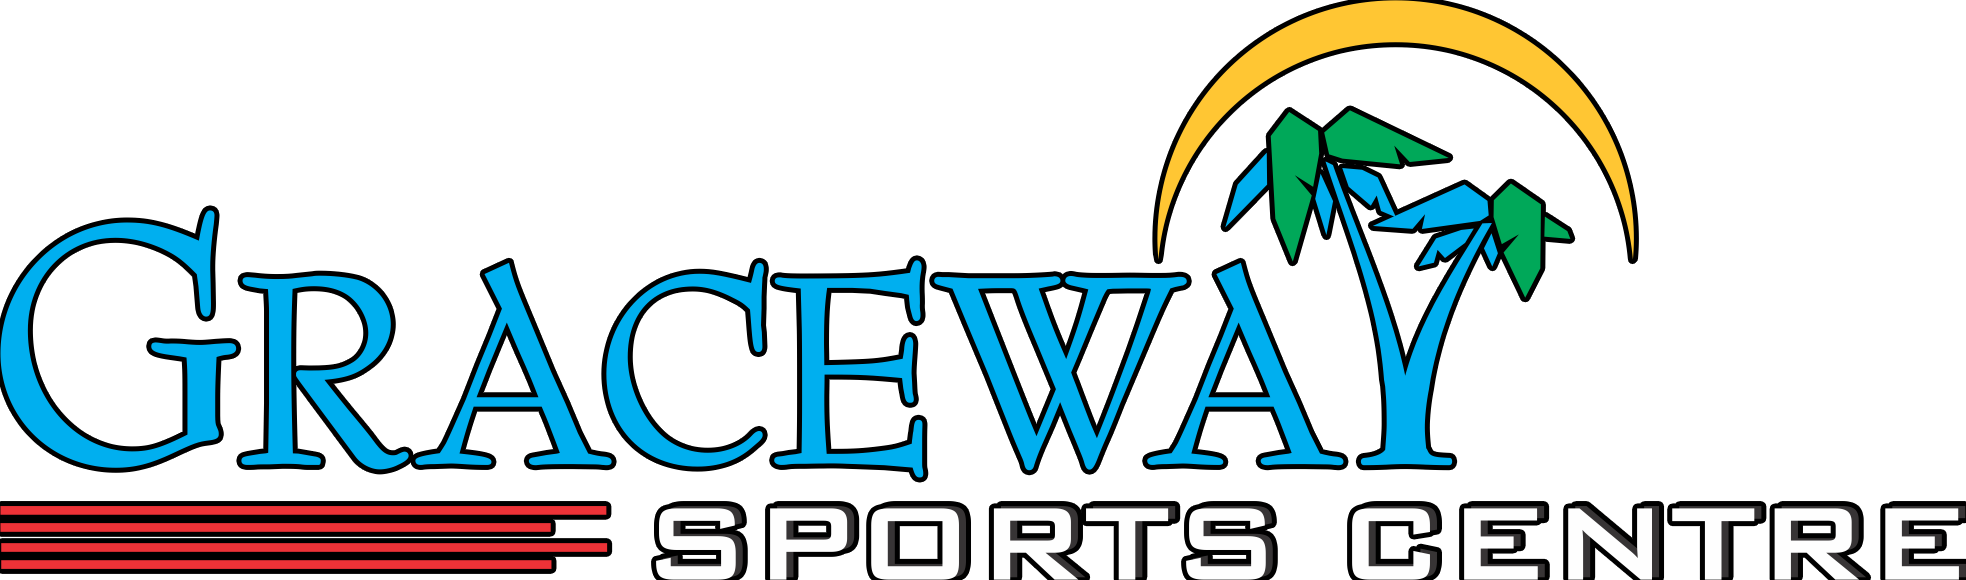 Private - Graceway Sports Center